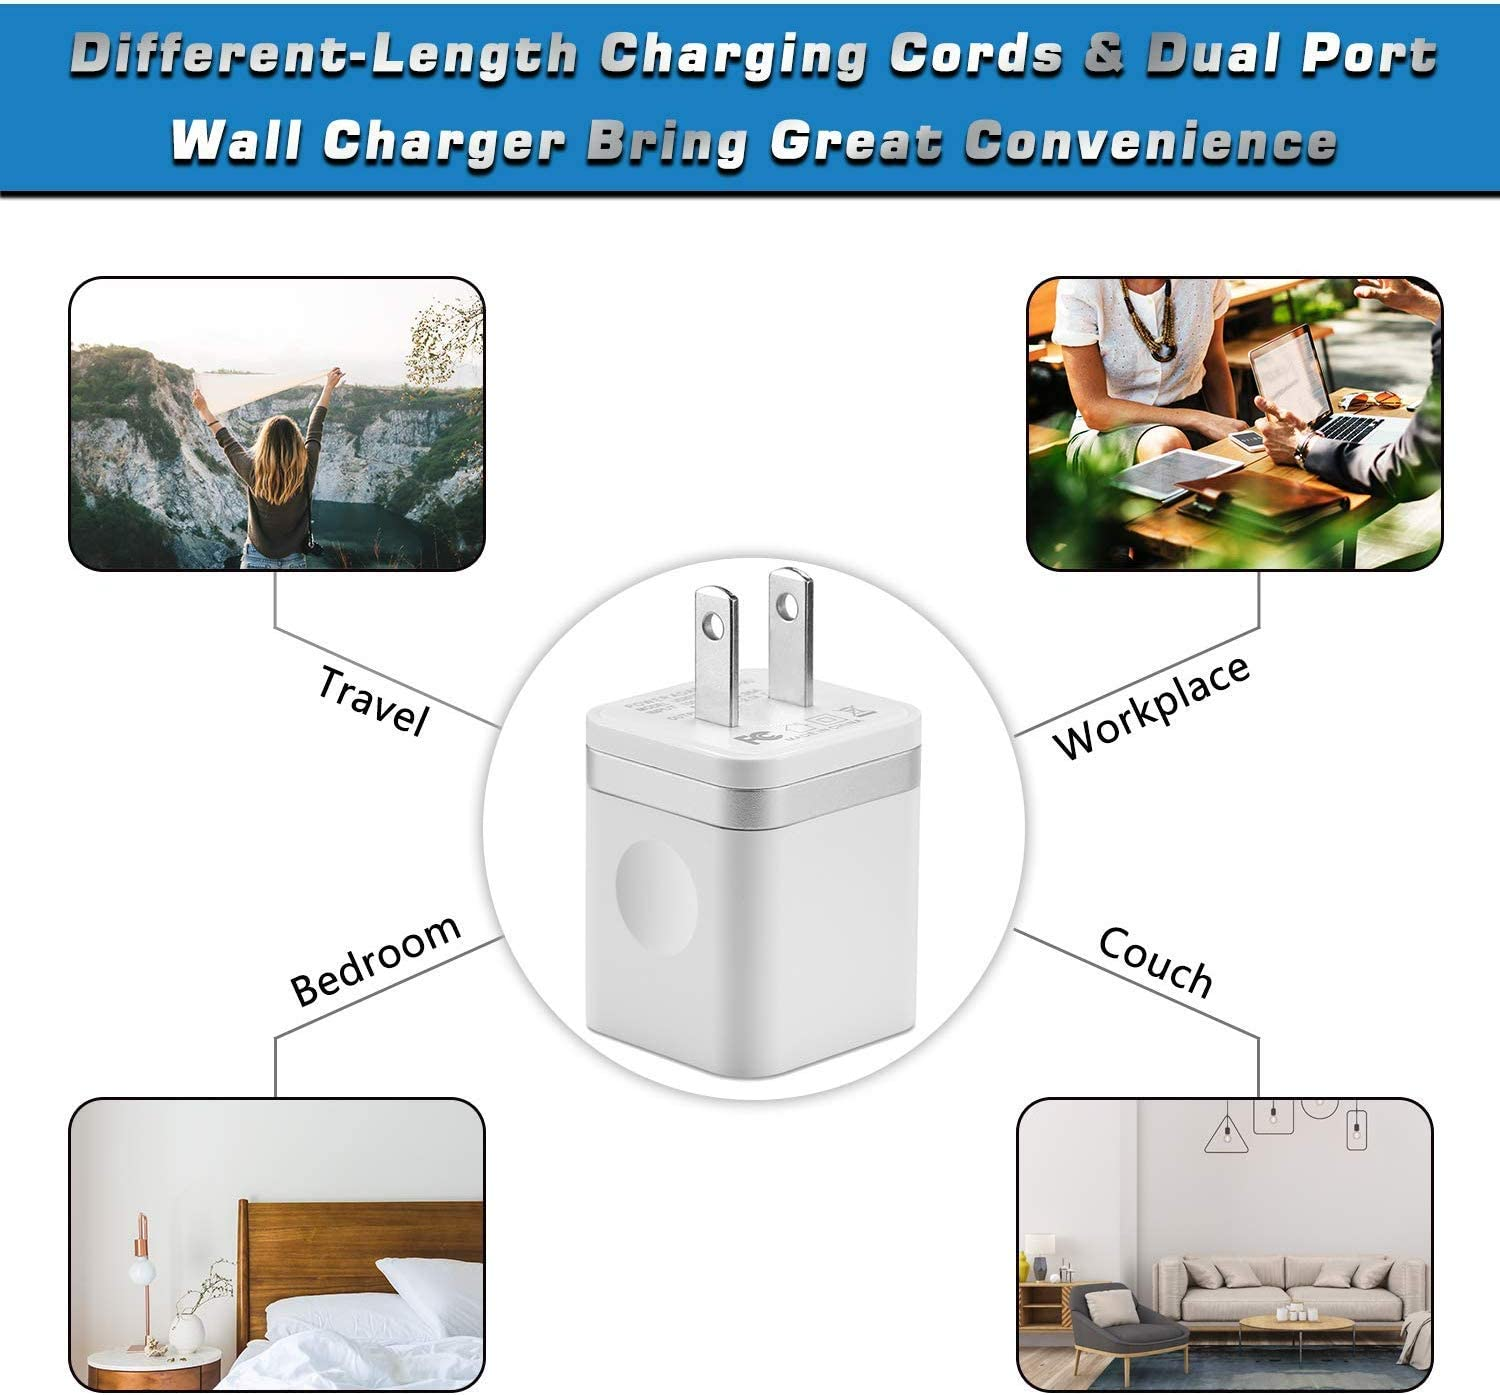 6FT X 3 Extra Long Fast Charging /& Sync Cable with 2 X Dual Port USB Wall Charger Plug Adapter Compatible with iPhone 11 Xs Max XR X 8 7 6S 6 Plus SE 5S Pad GLUGRU Phone Charger 5-Pack